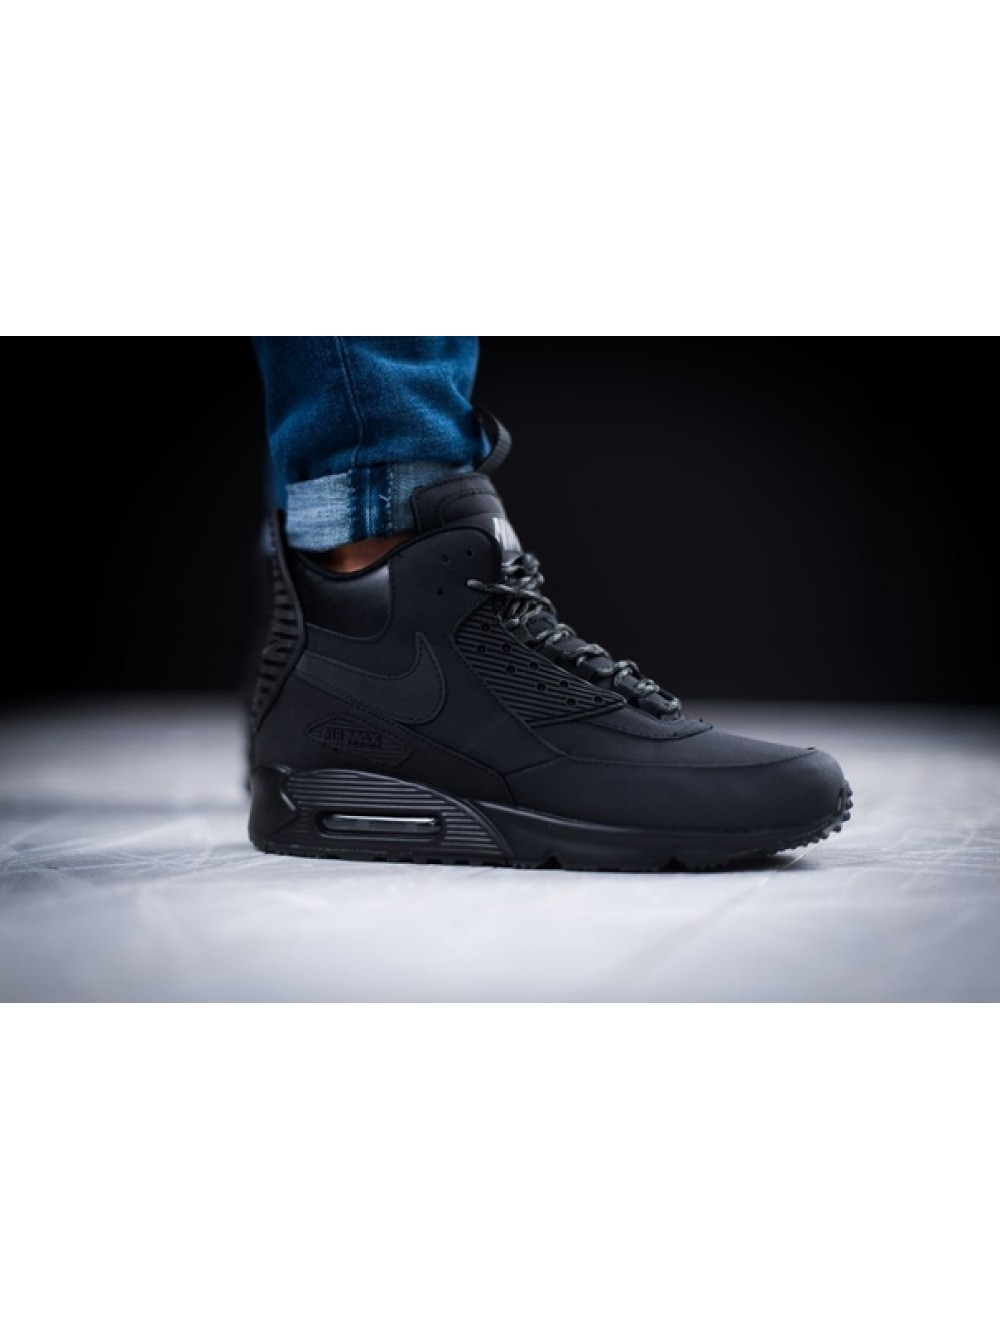 new concept 70a26 55c0e Кроссовки Nike Air Max 90 Sneakerboot Winter Black/White